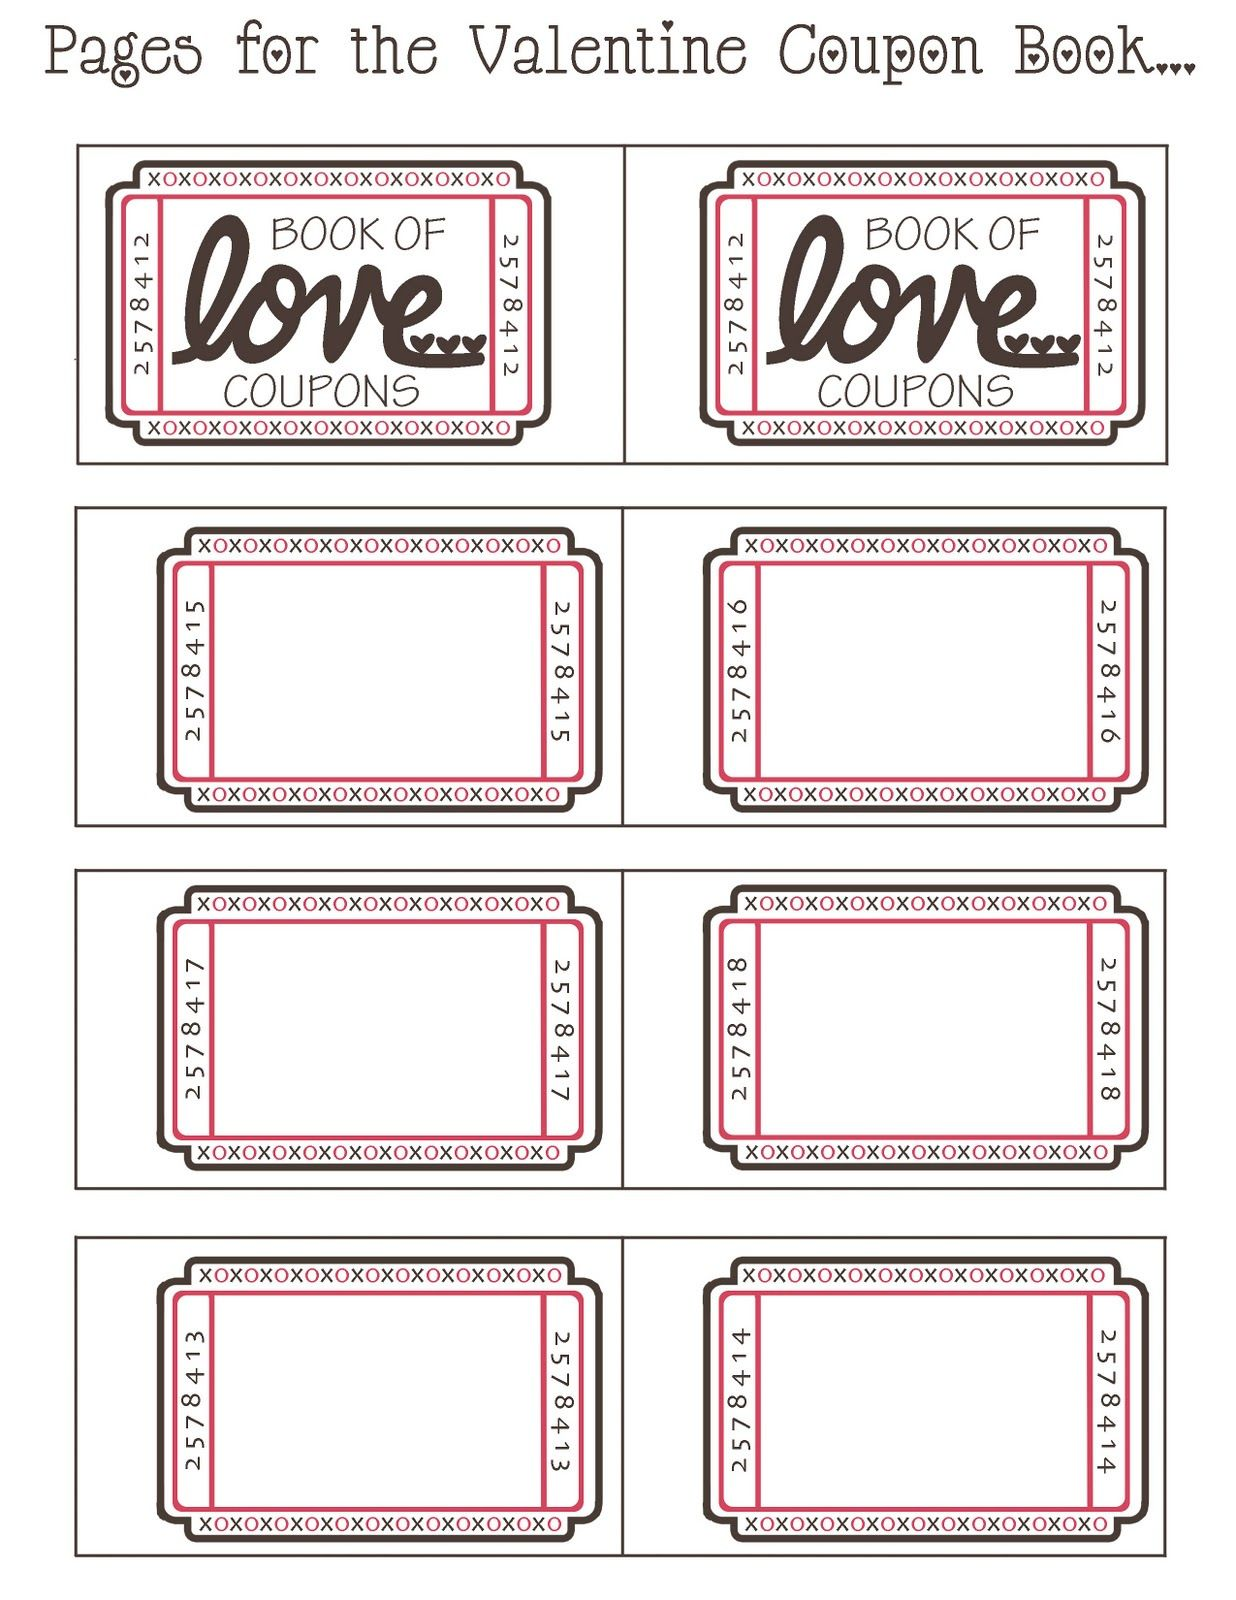 Boyfriend Pinterest Valentines Craft Ideas Free Printable – Payment Coupon Book Template